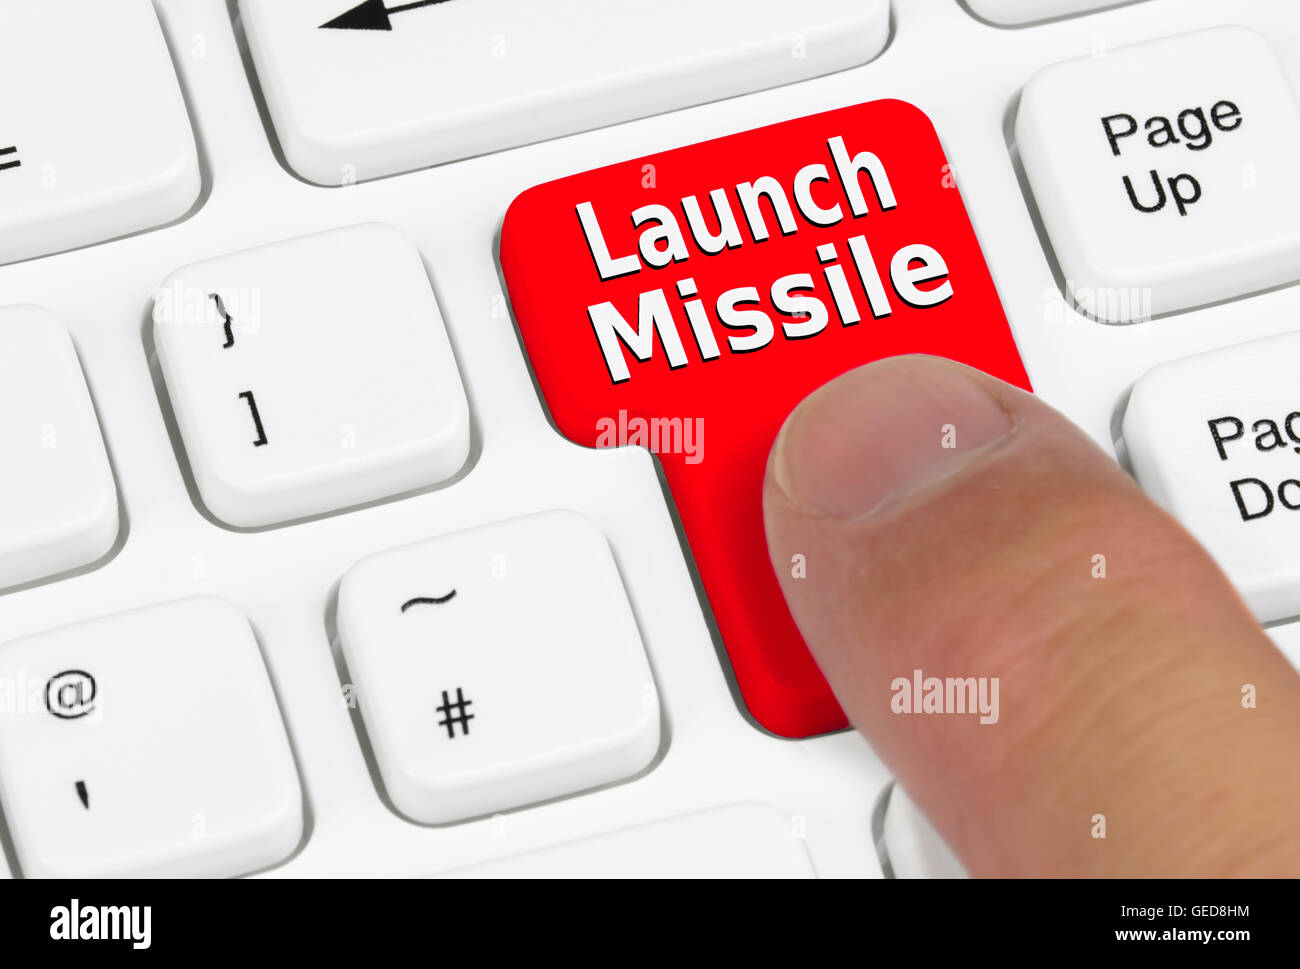 Launch missile button being pressed. - Stock Image